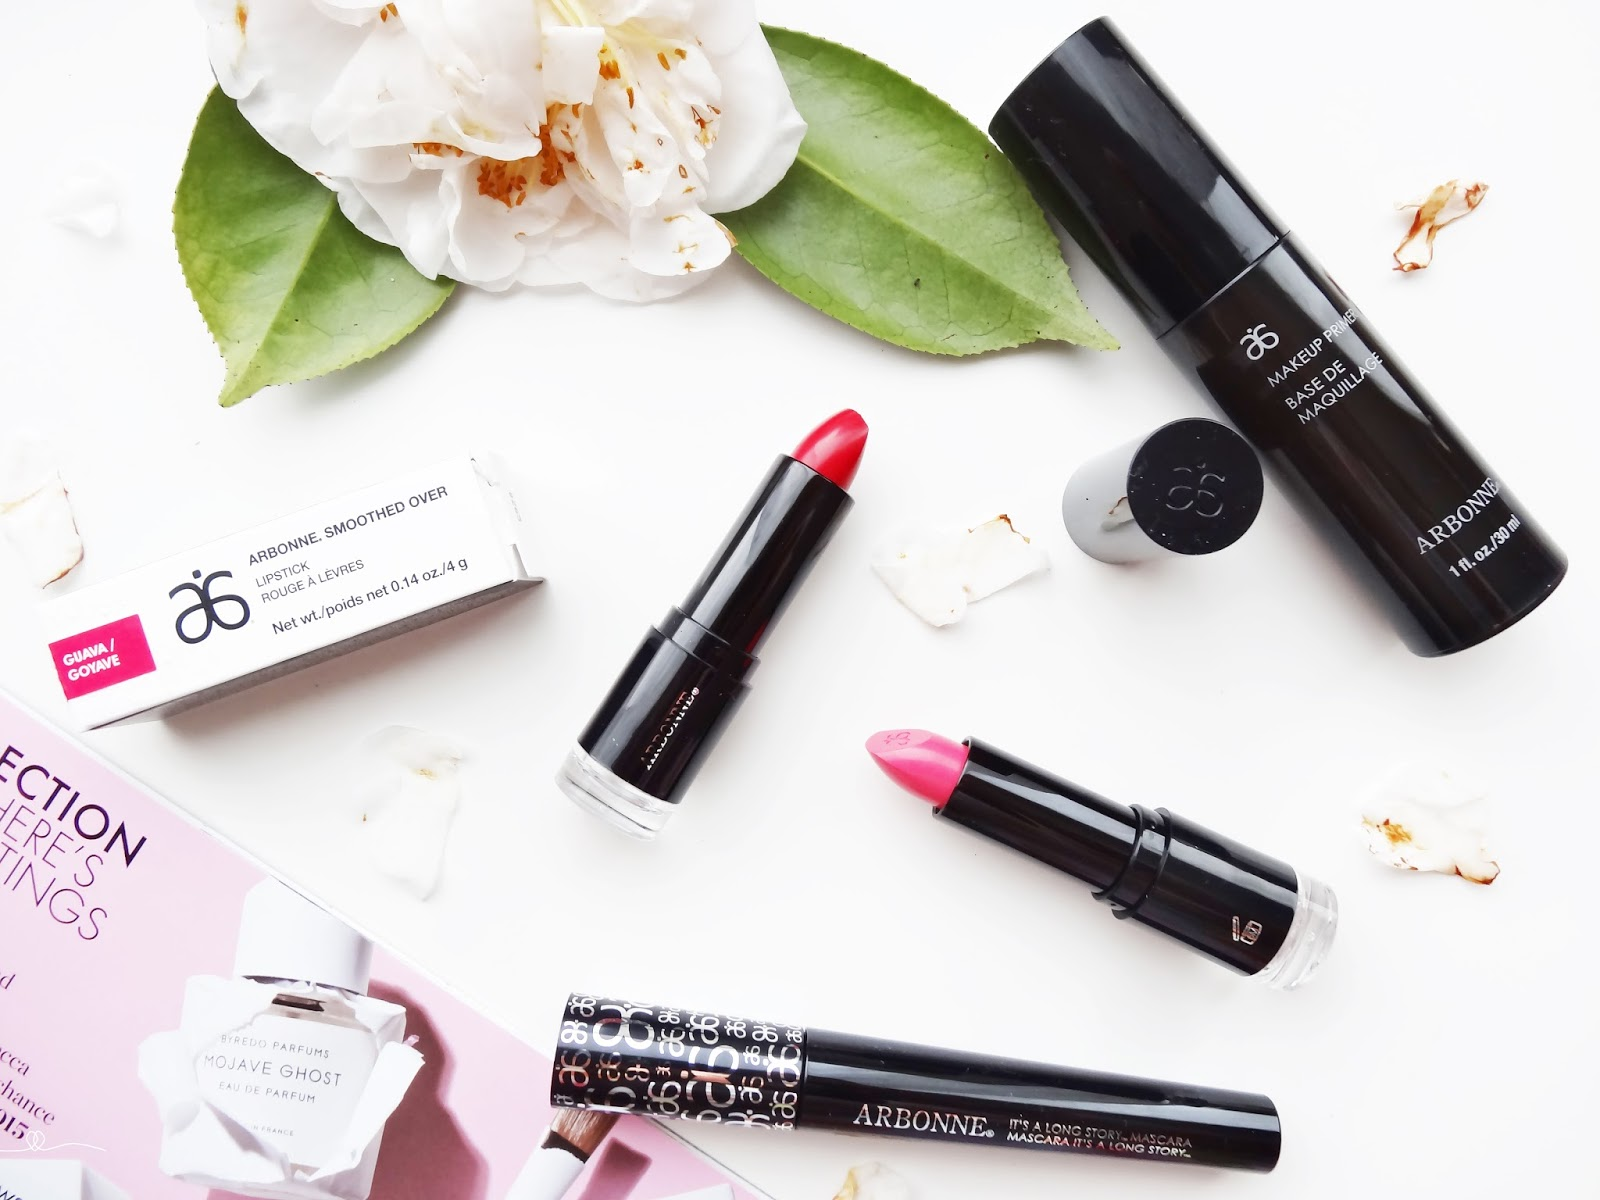 Arbonne Makeup Vidalondon